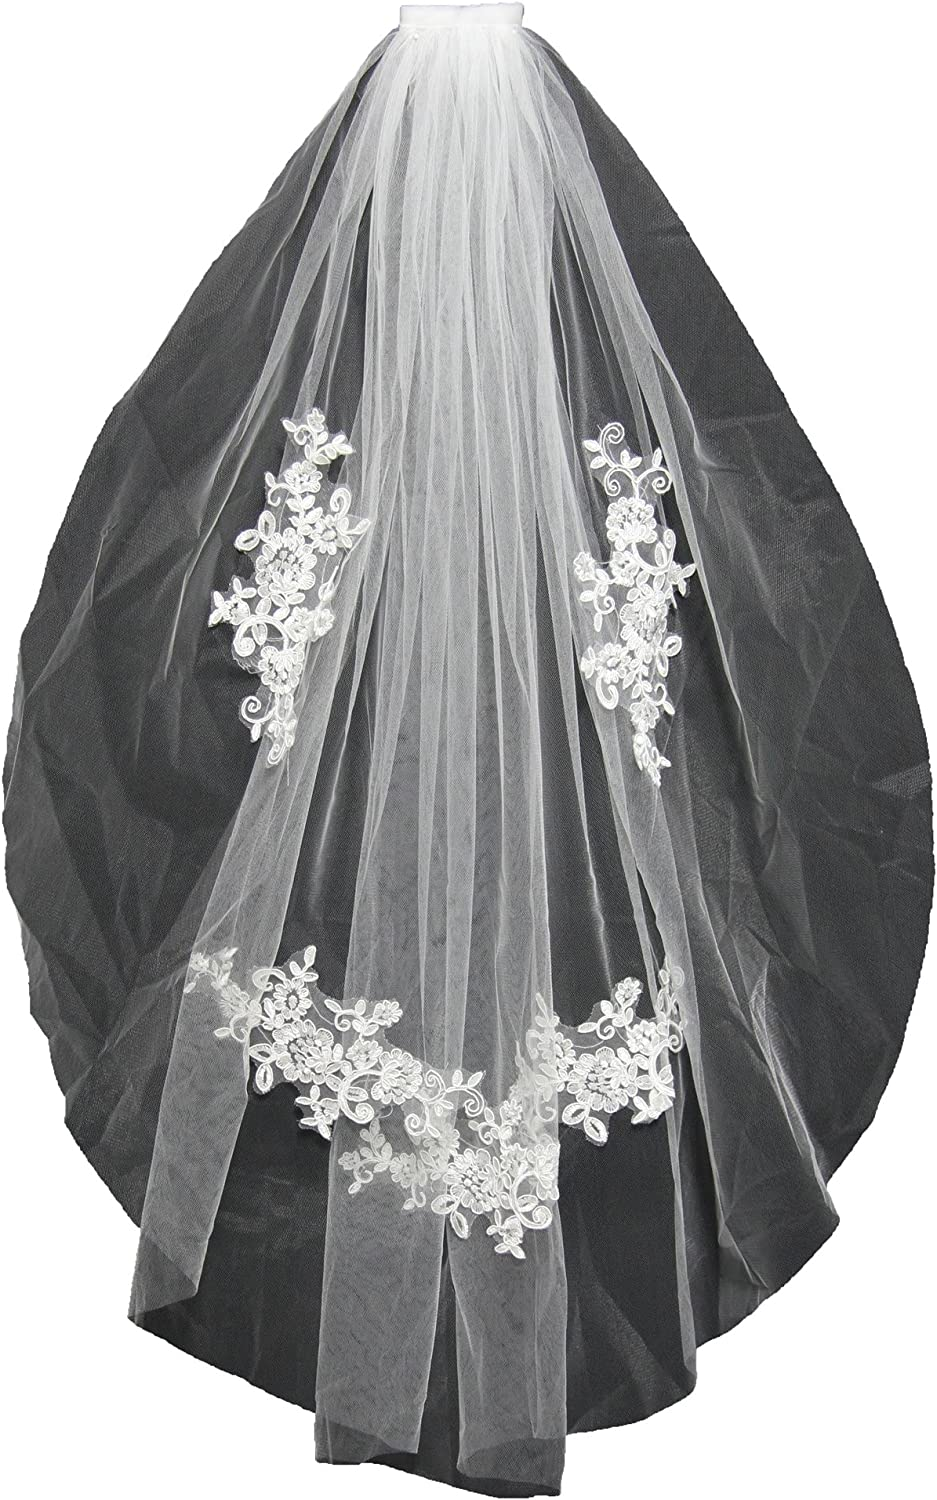 KAY&LAYLA 1T 1 Layer Lace Wedding Veils 1 Tiers Bridal Veil with Comb